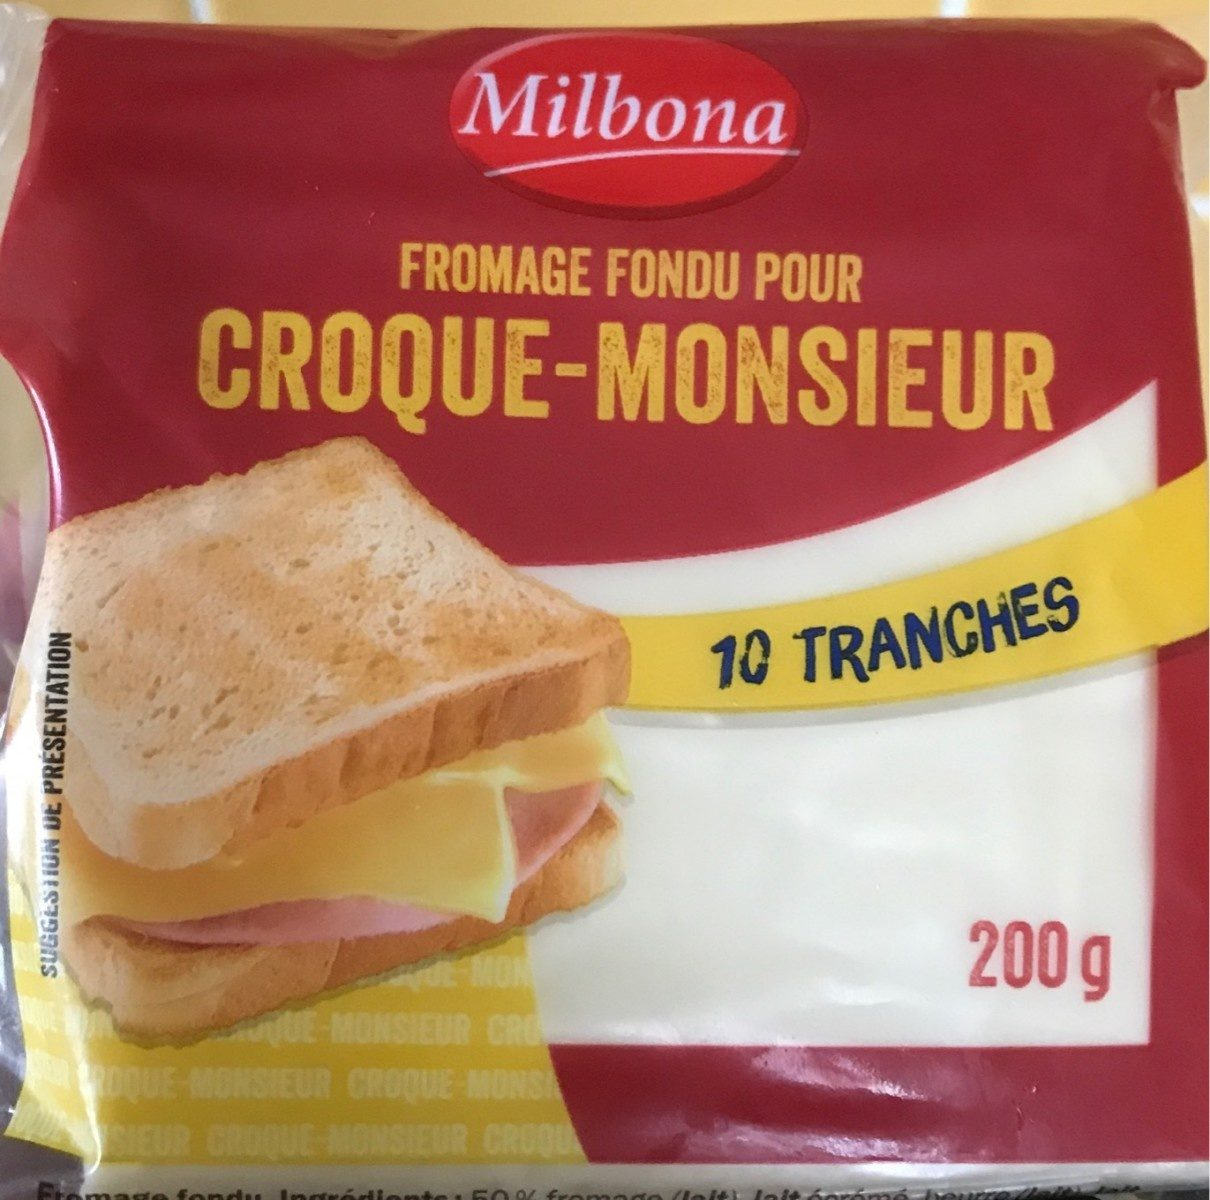 Croque Monsieur fondant (23 % MG) 10 tranches - Product